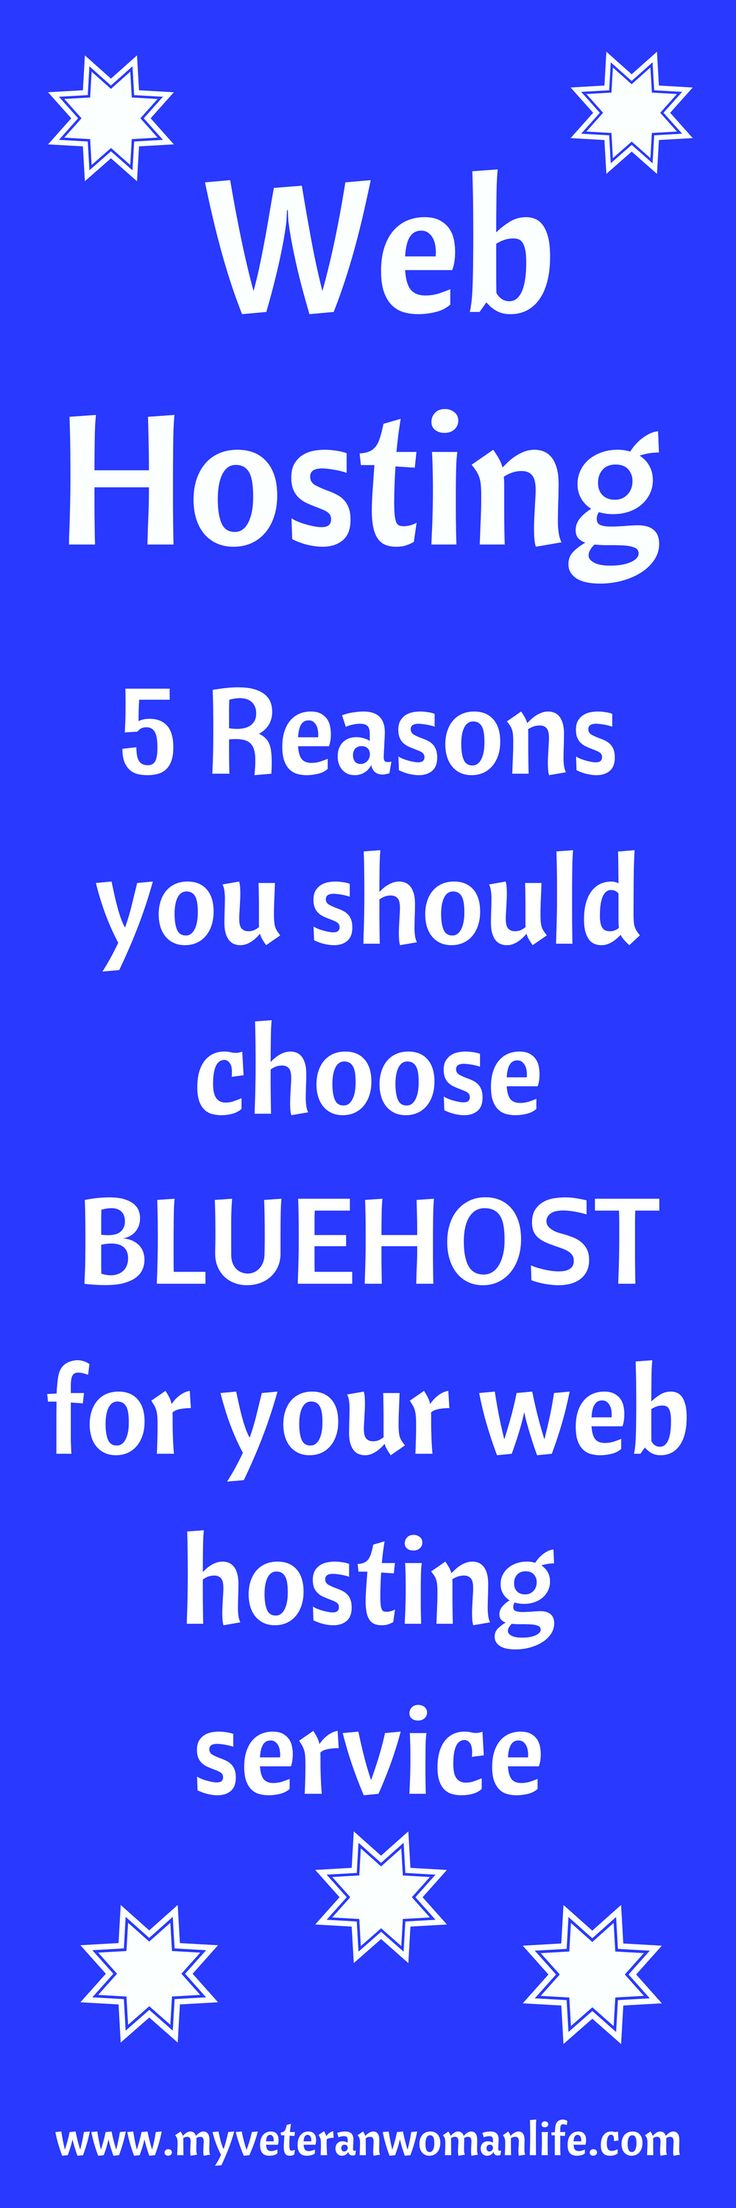 It is important to choose a great web hosting service for your blog.  Bluehost is recommended by Wordpress as a top web hosting service for Wordpress blogs.  Here are five reasons that you should choose Bluehost for your web hosting service.